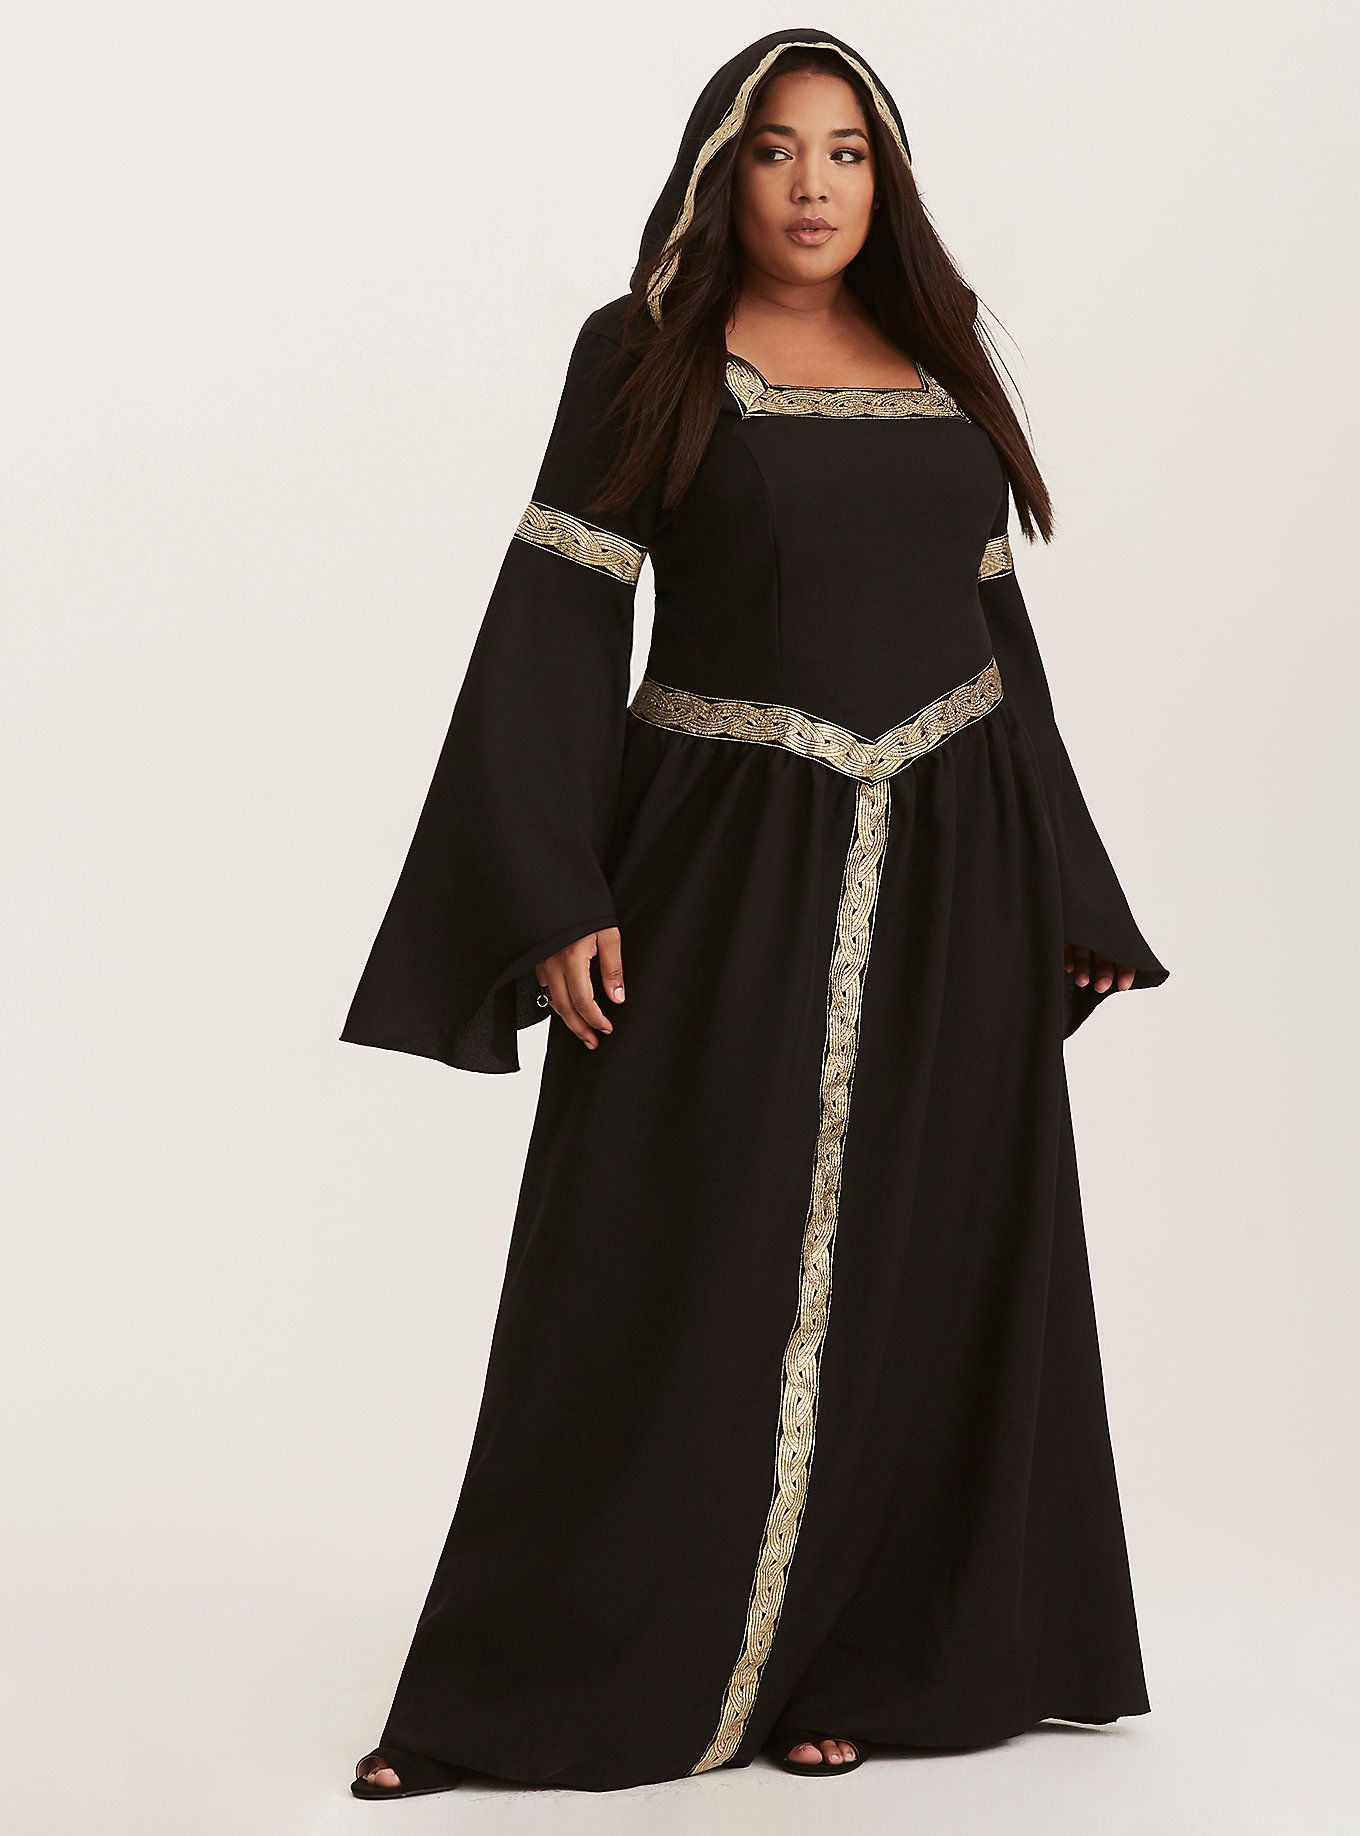 Leg Avenue Medieval Witch Halloween Outfit Torrid (Plus